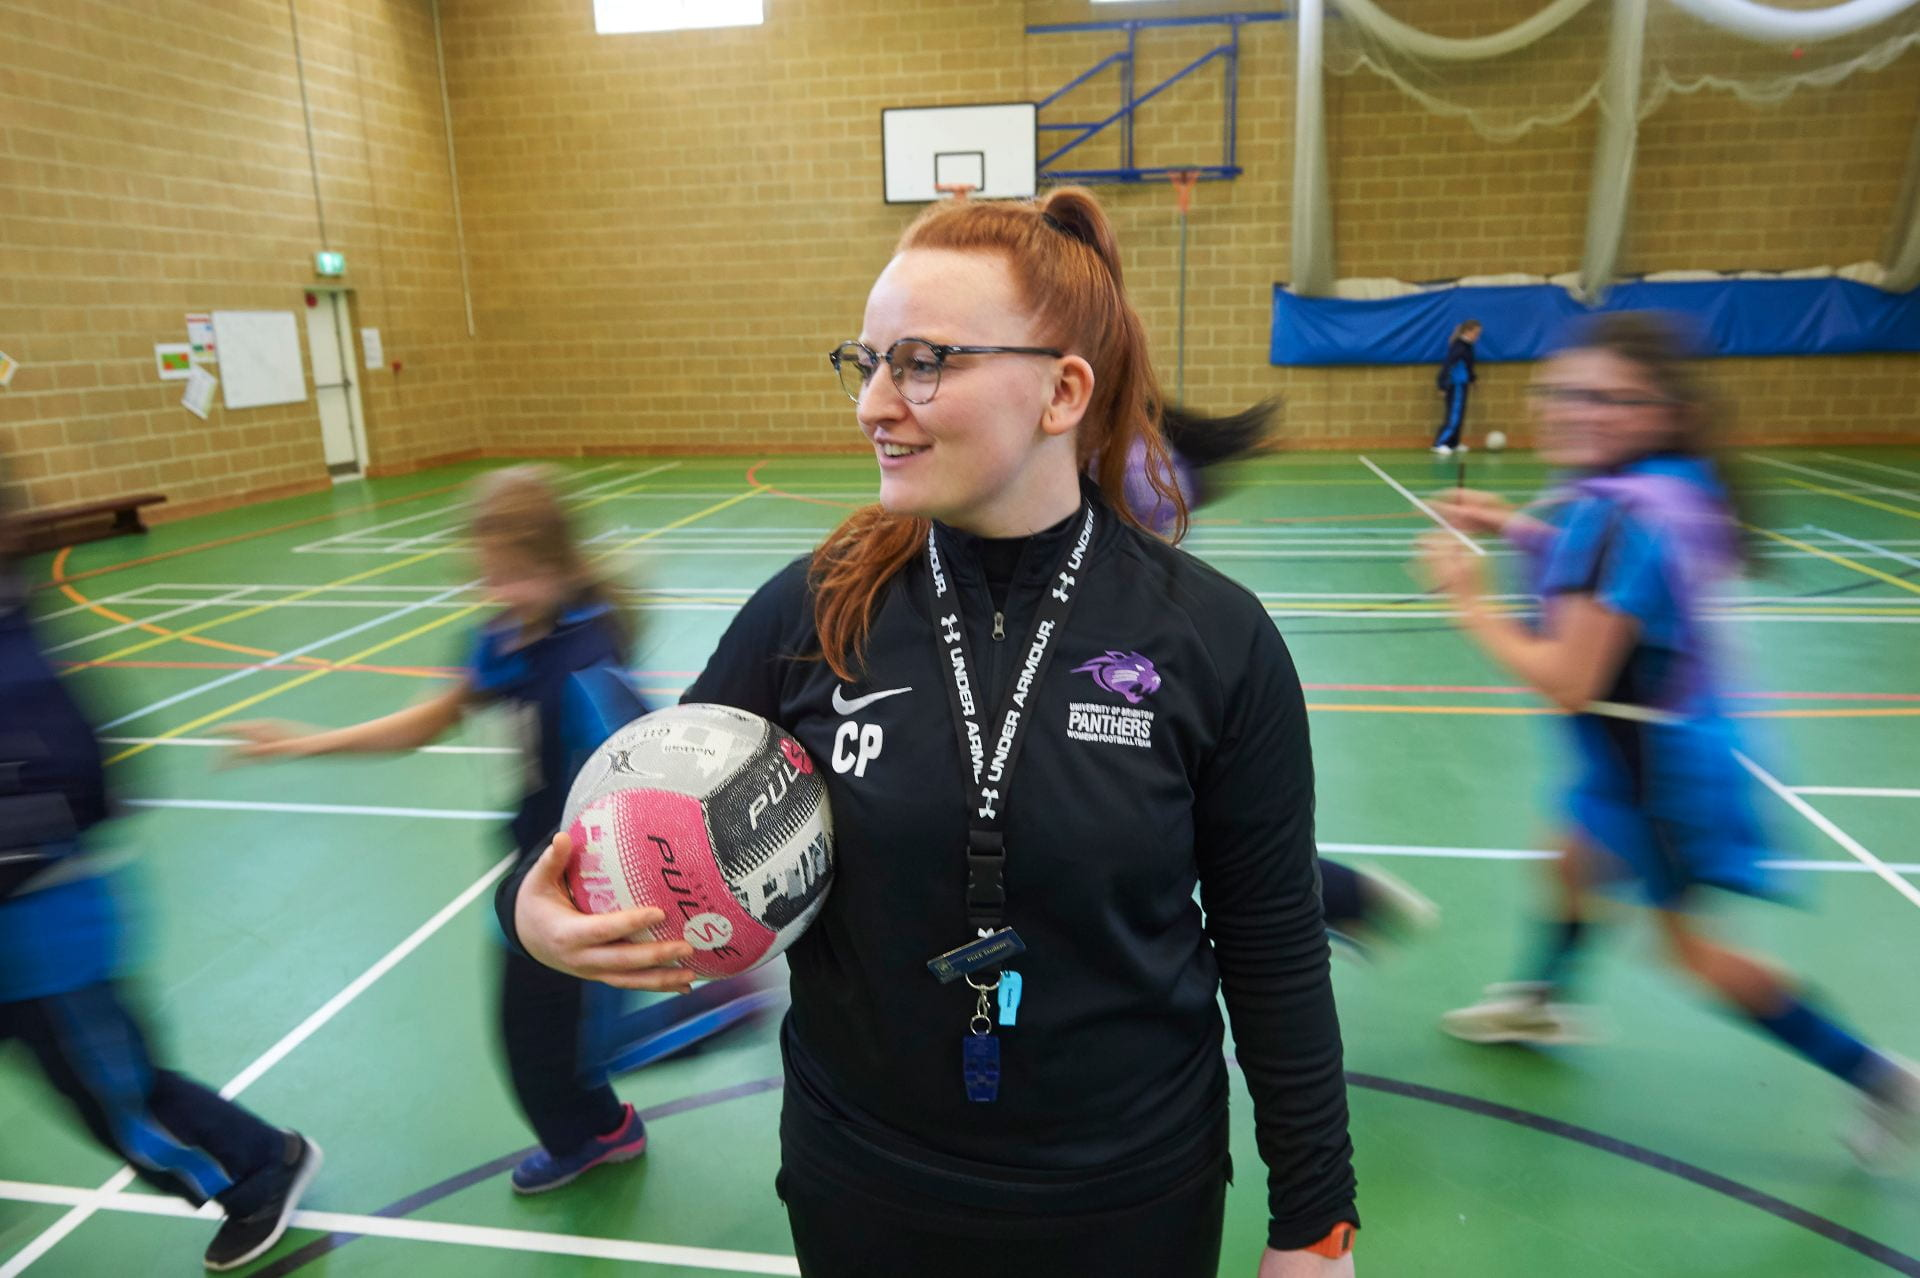 Trainee PE teacher in the gym with a class of children